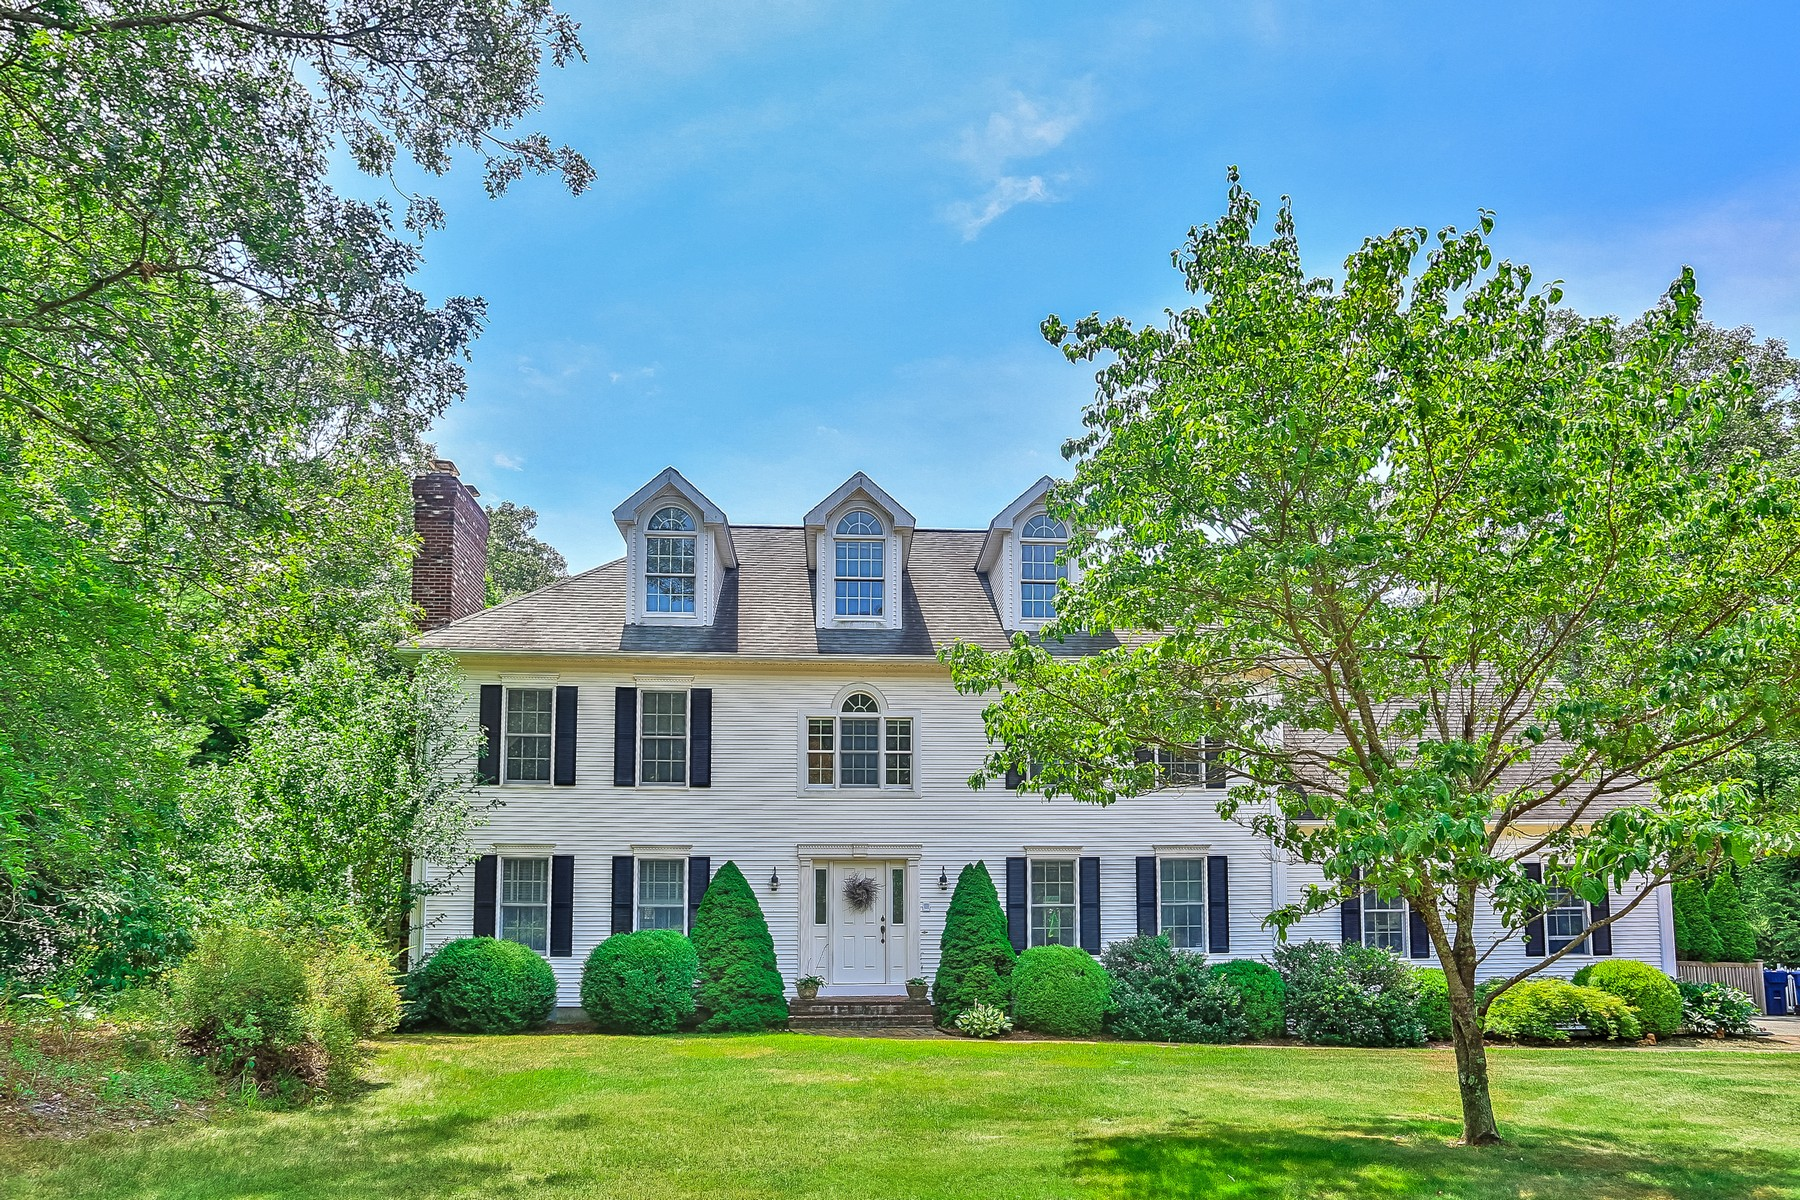 Single Family Home for Sale at Attention To Detail Abounds 3 Squire Hl Old Lyme, Connecticut 06371 United States